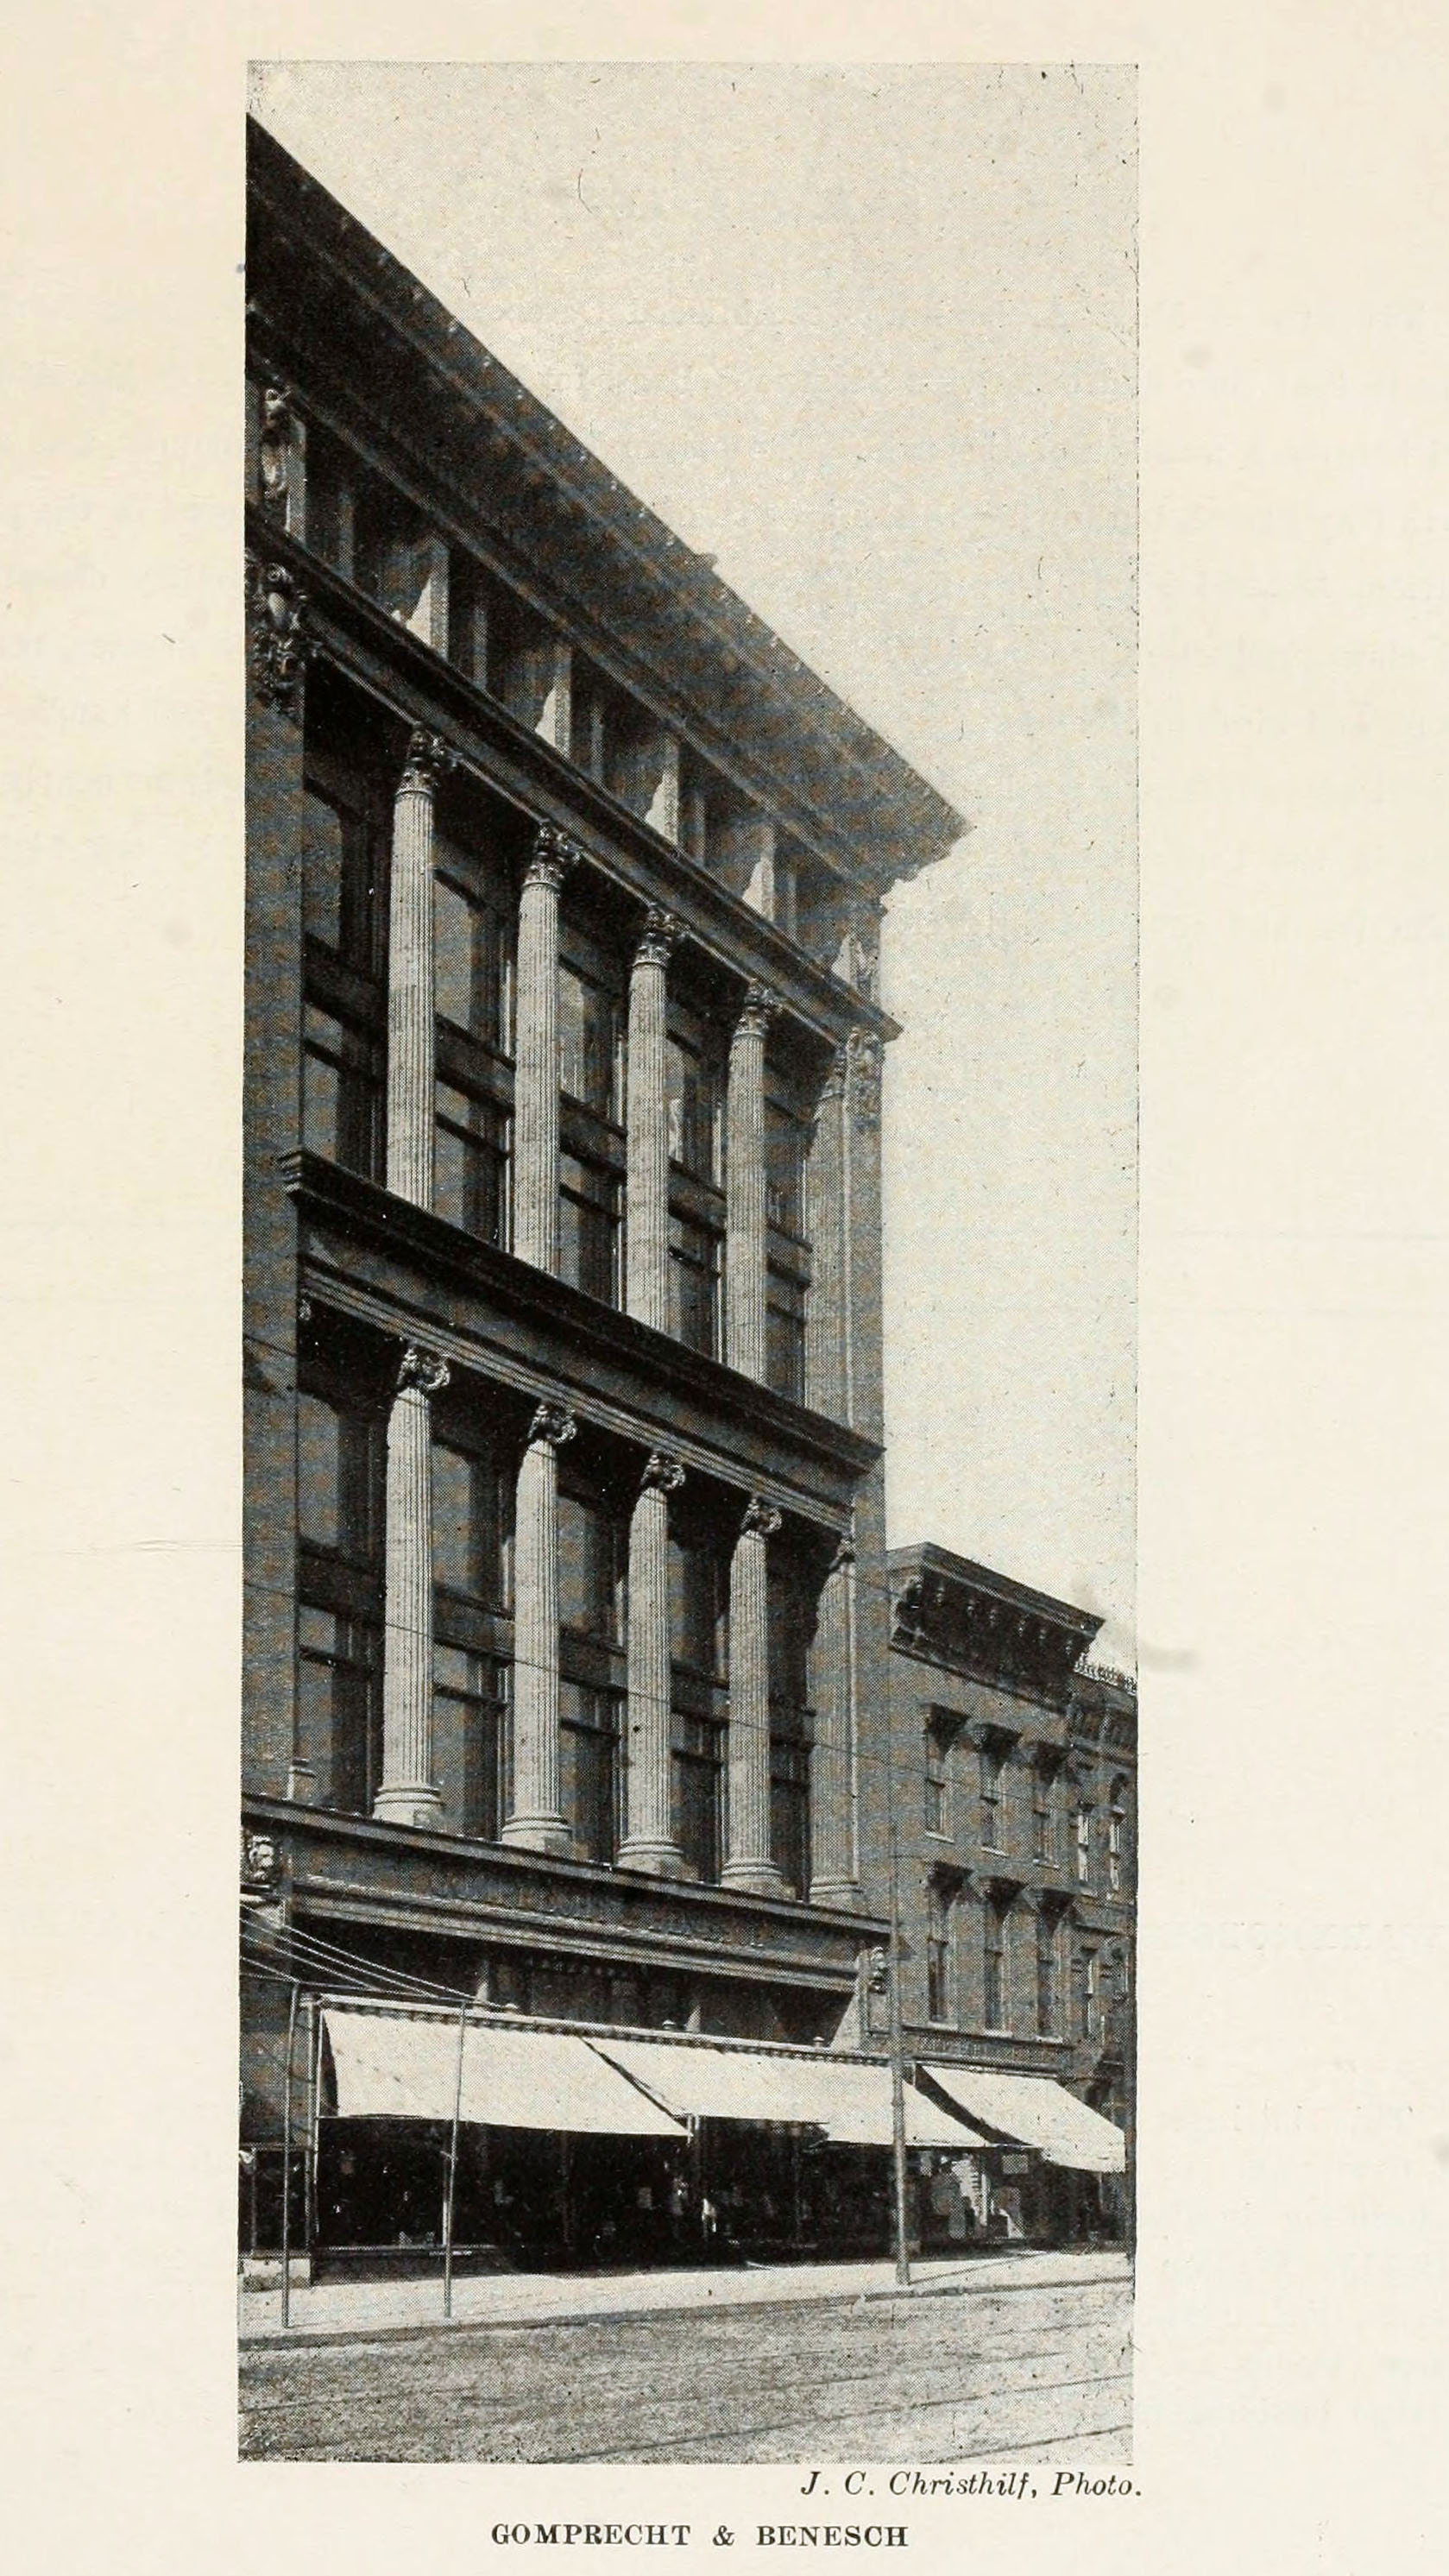 Gomprecht & Benesch Building on Eutaw Street